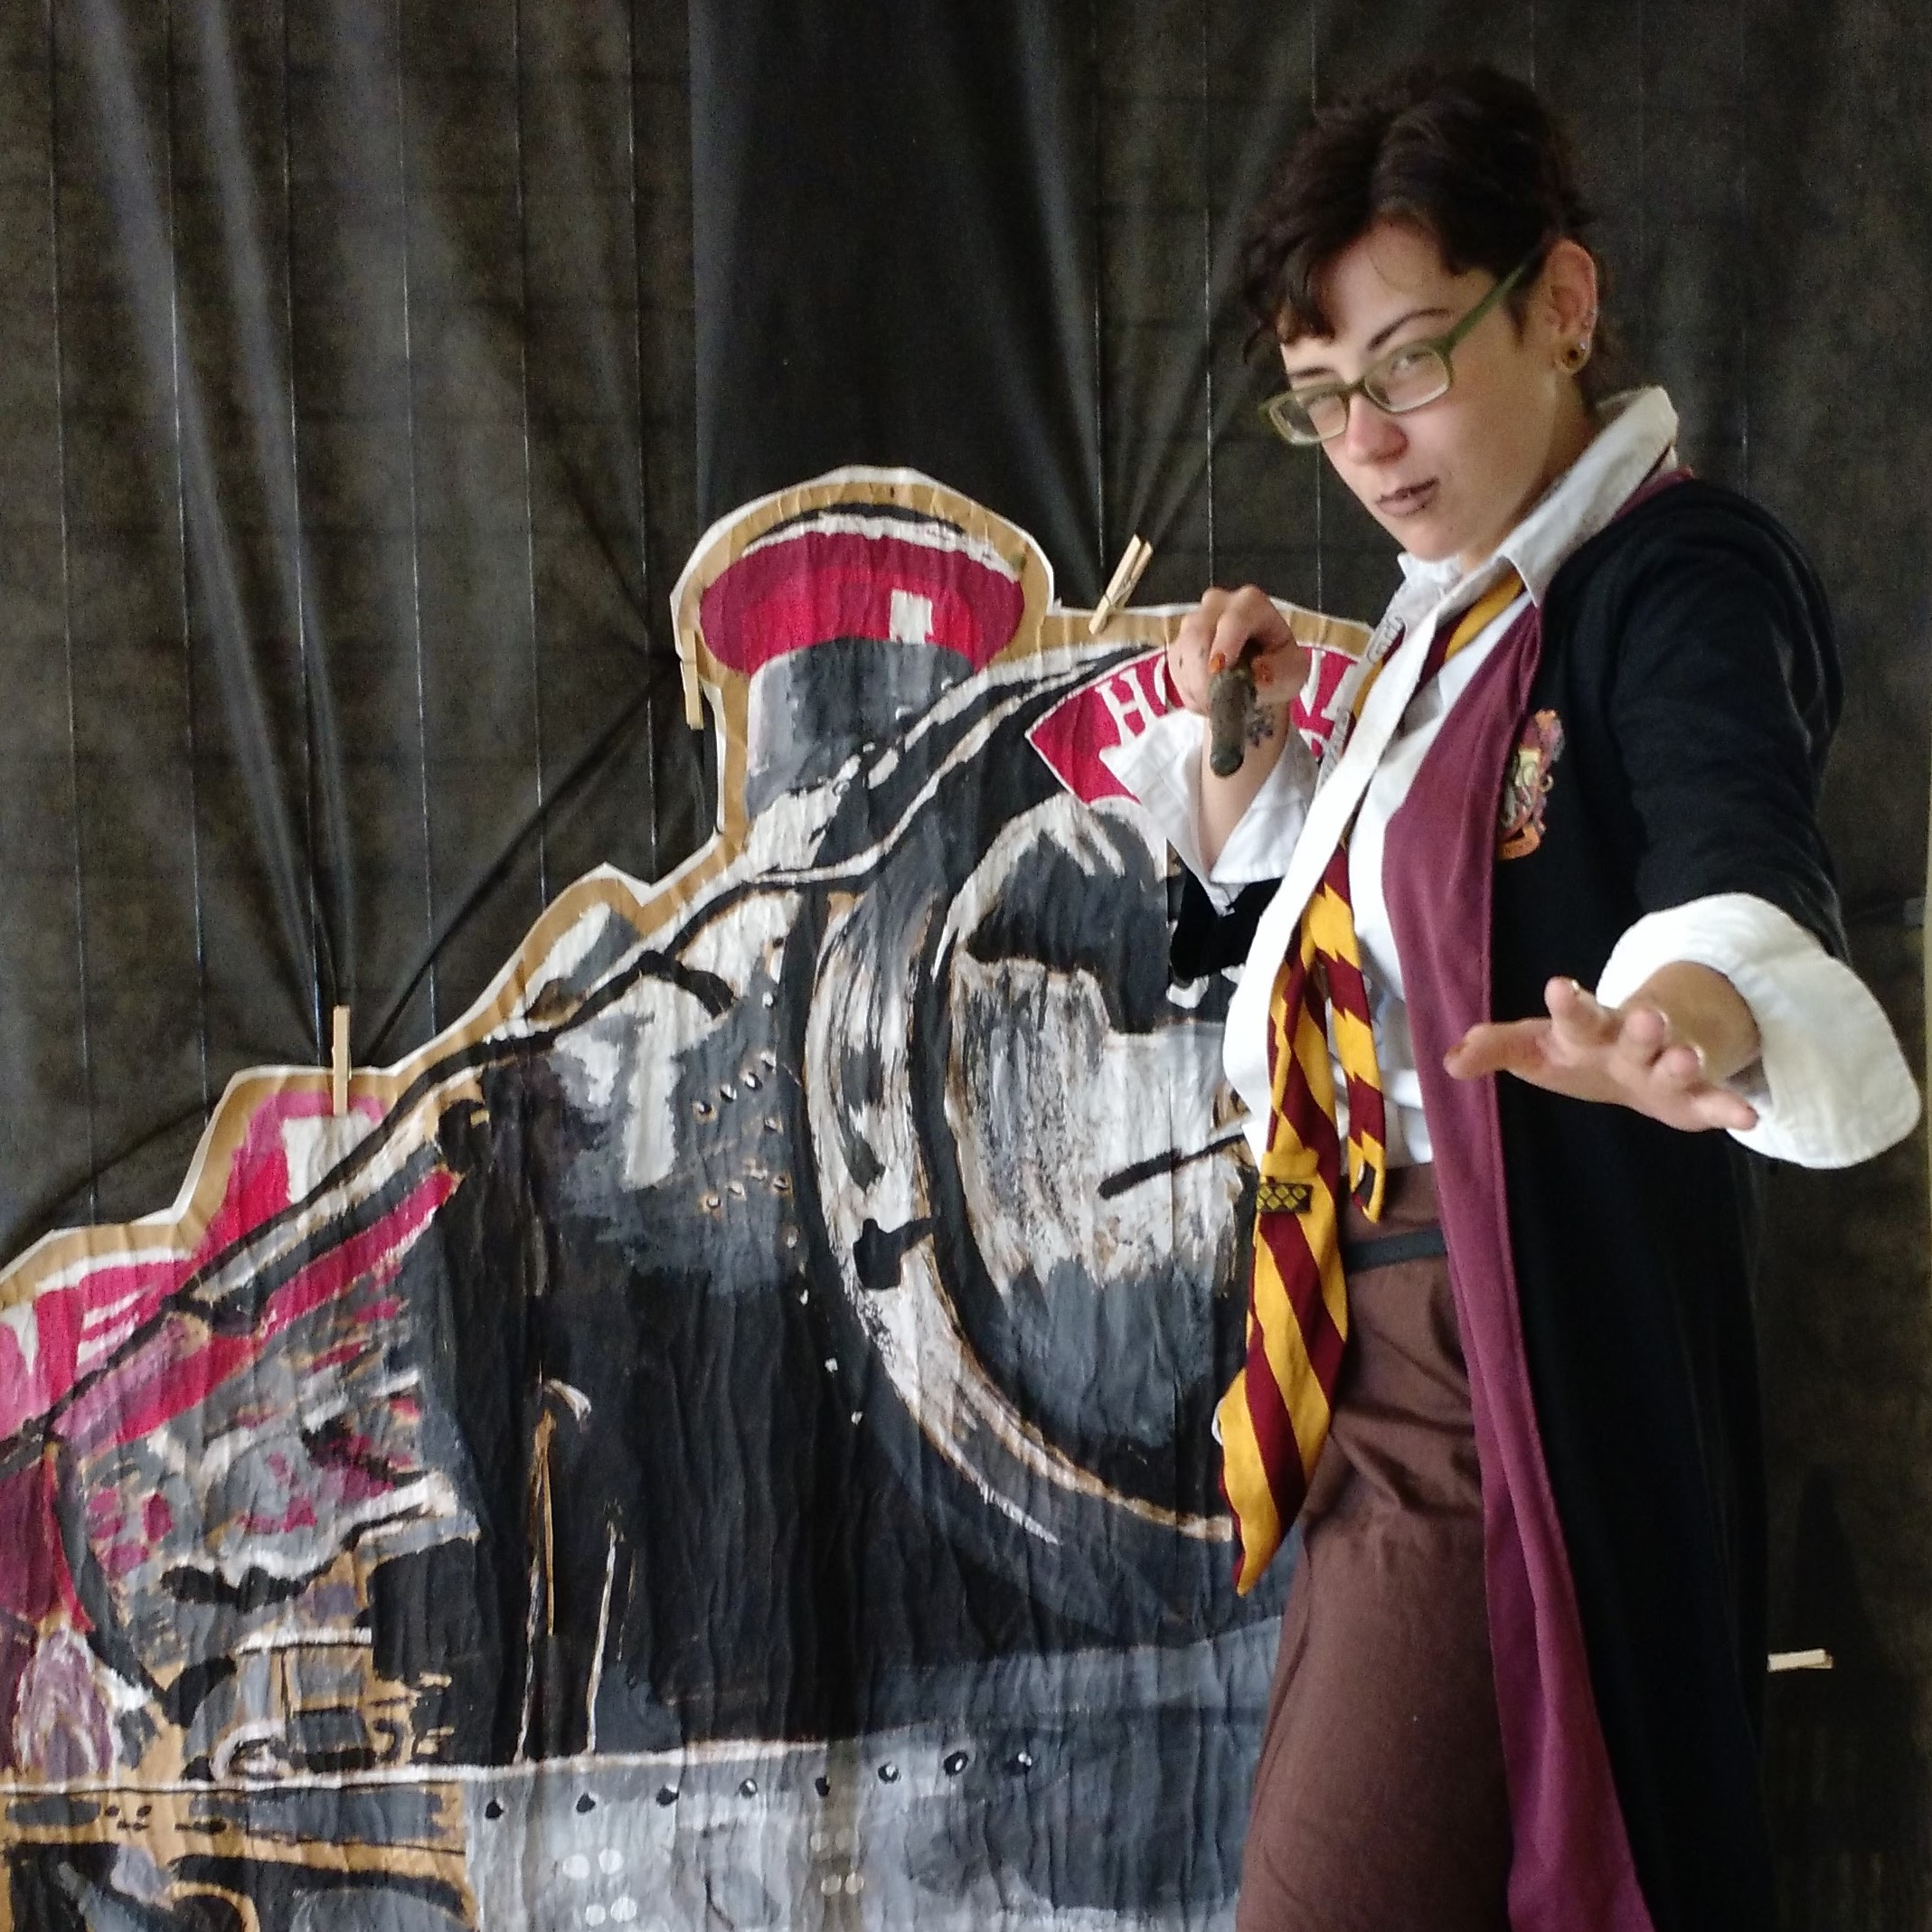 Cosplaying a character from Harry Potter.